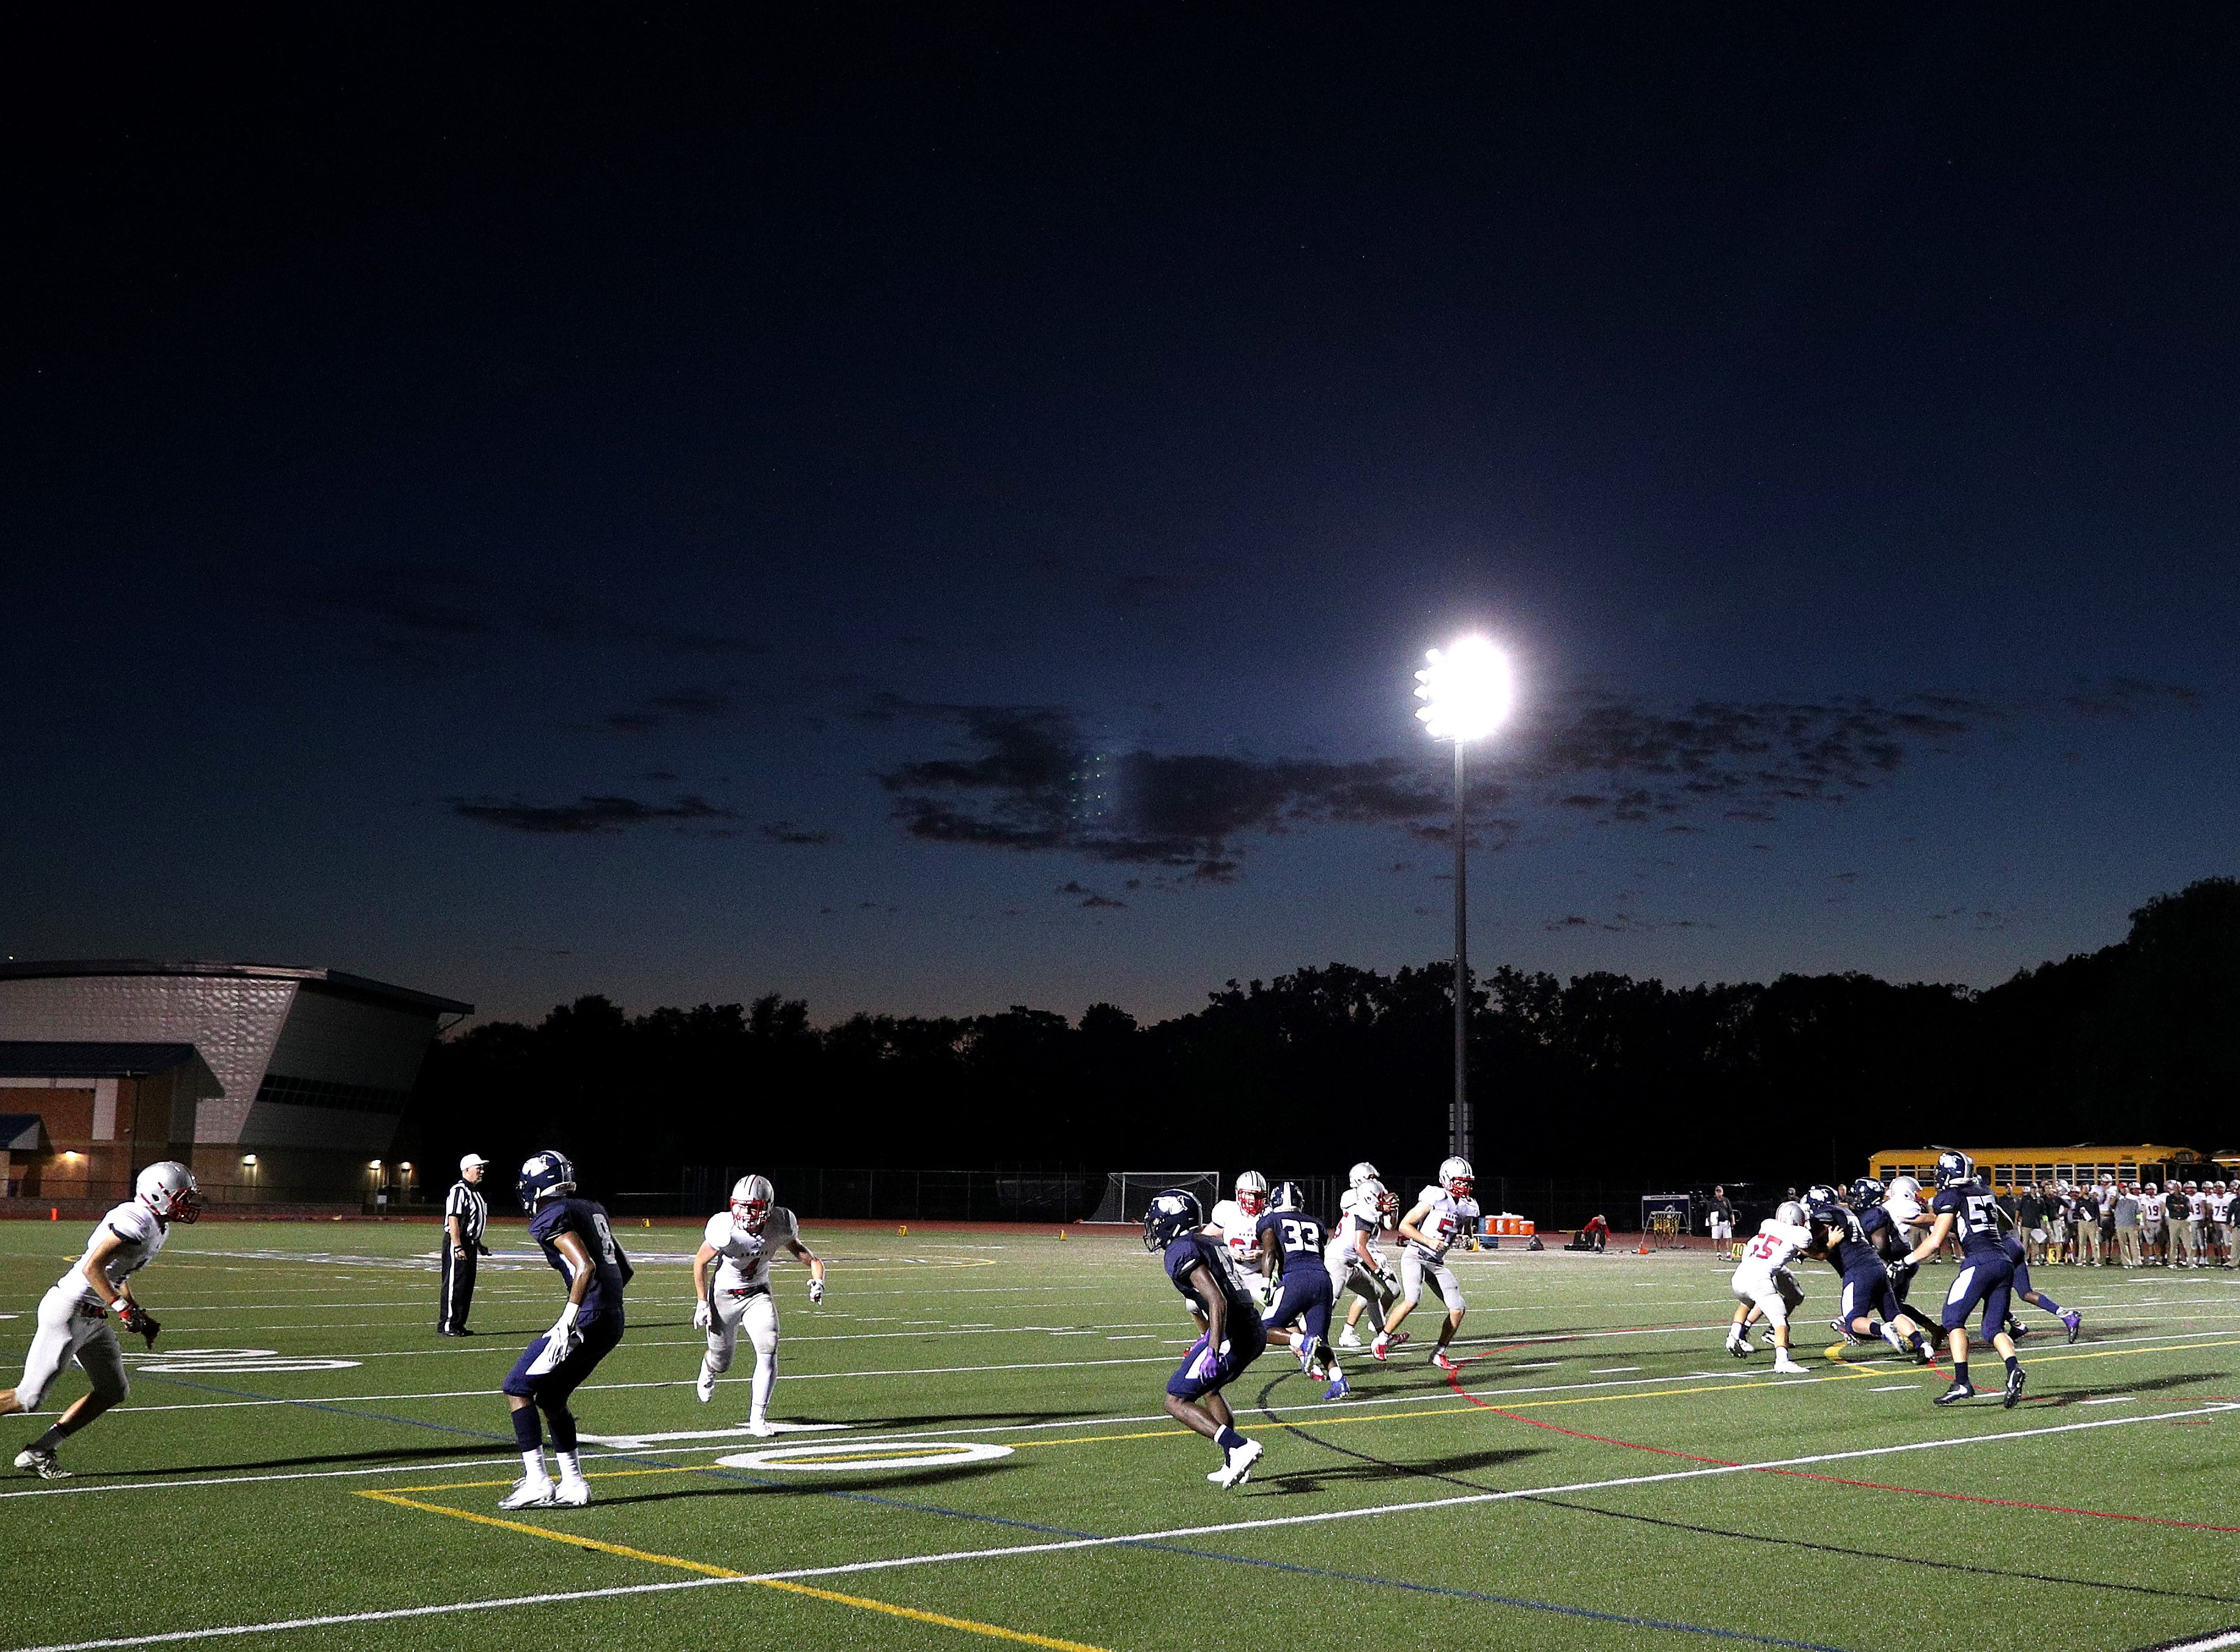 The sun sets as Canandaigua went on to beat Eastridge 31-21.